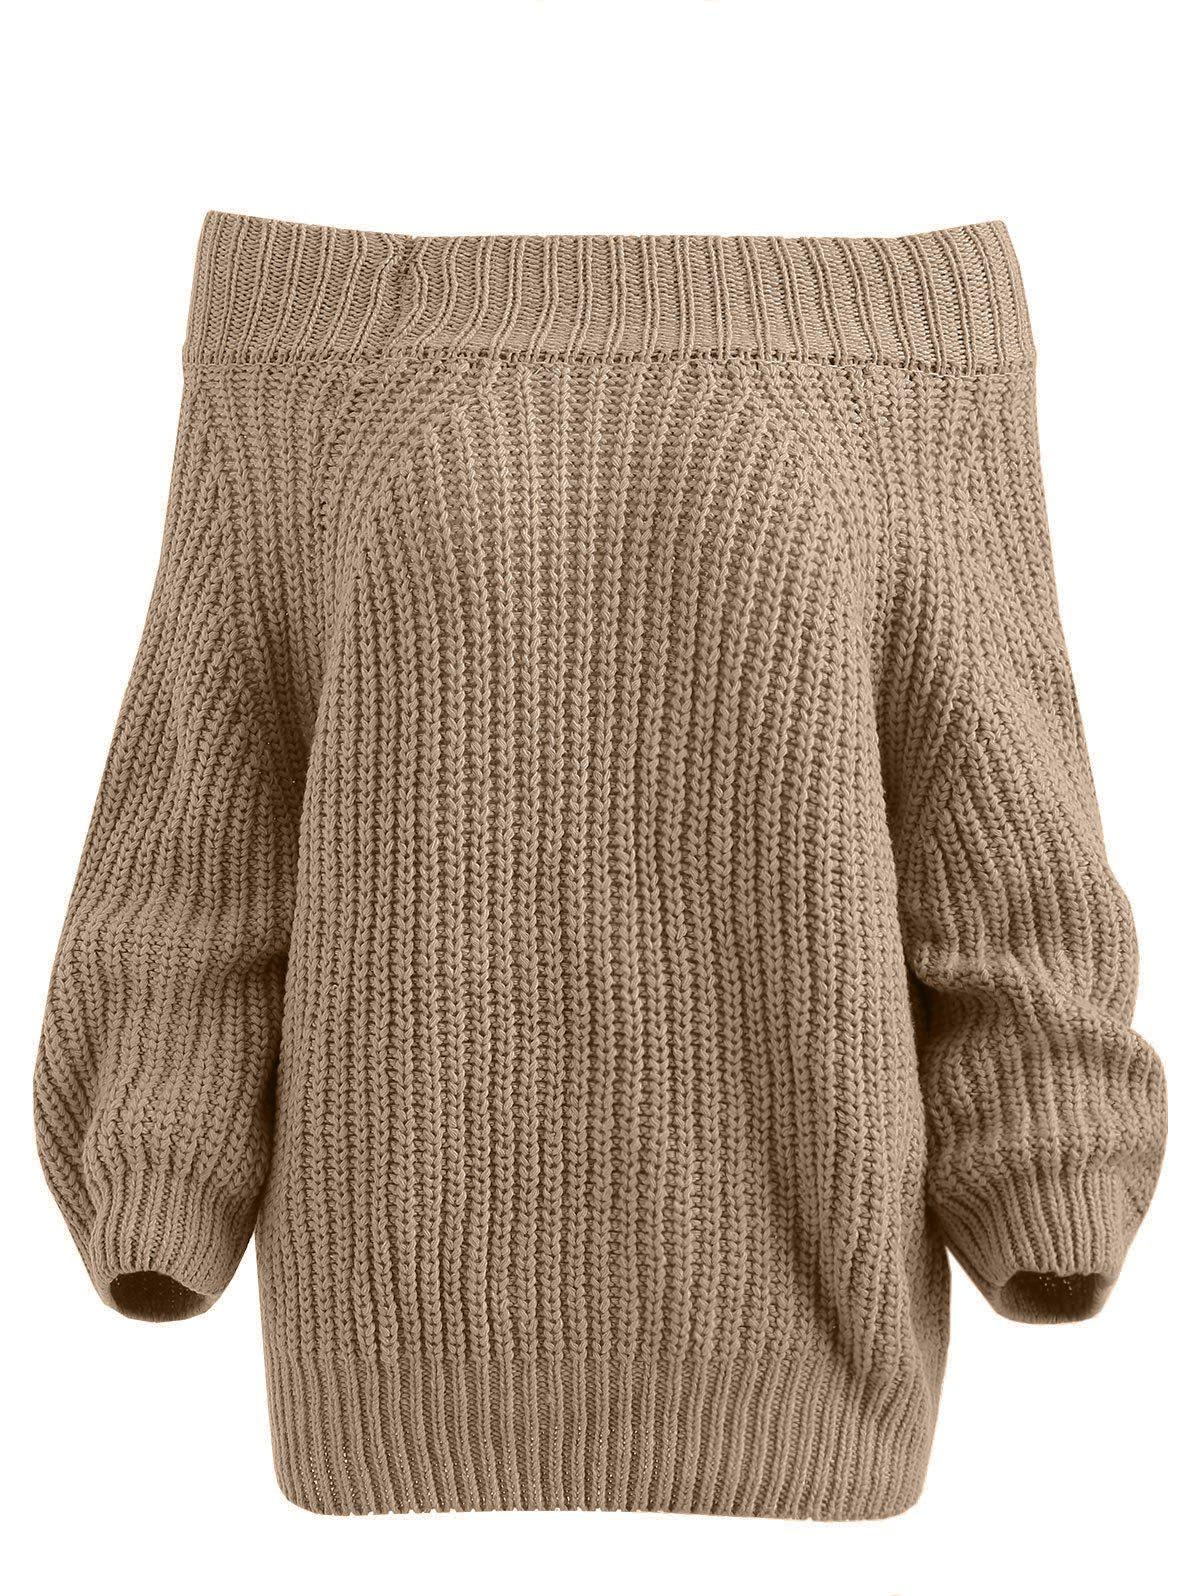 eb56a5090 45% OFF   2019 OFF The Shoulder Plain Sweater